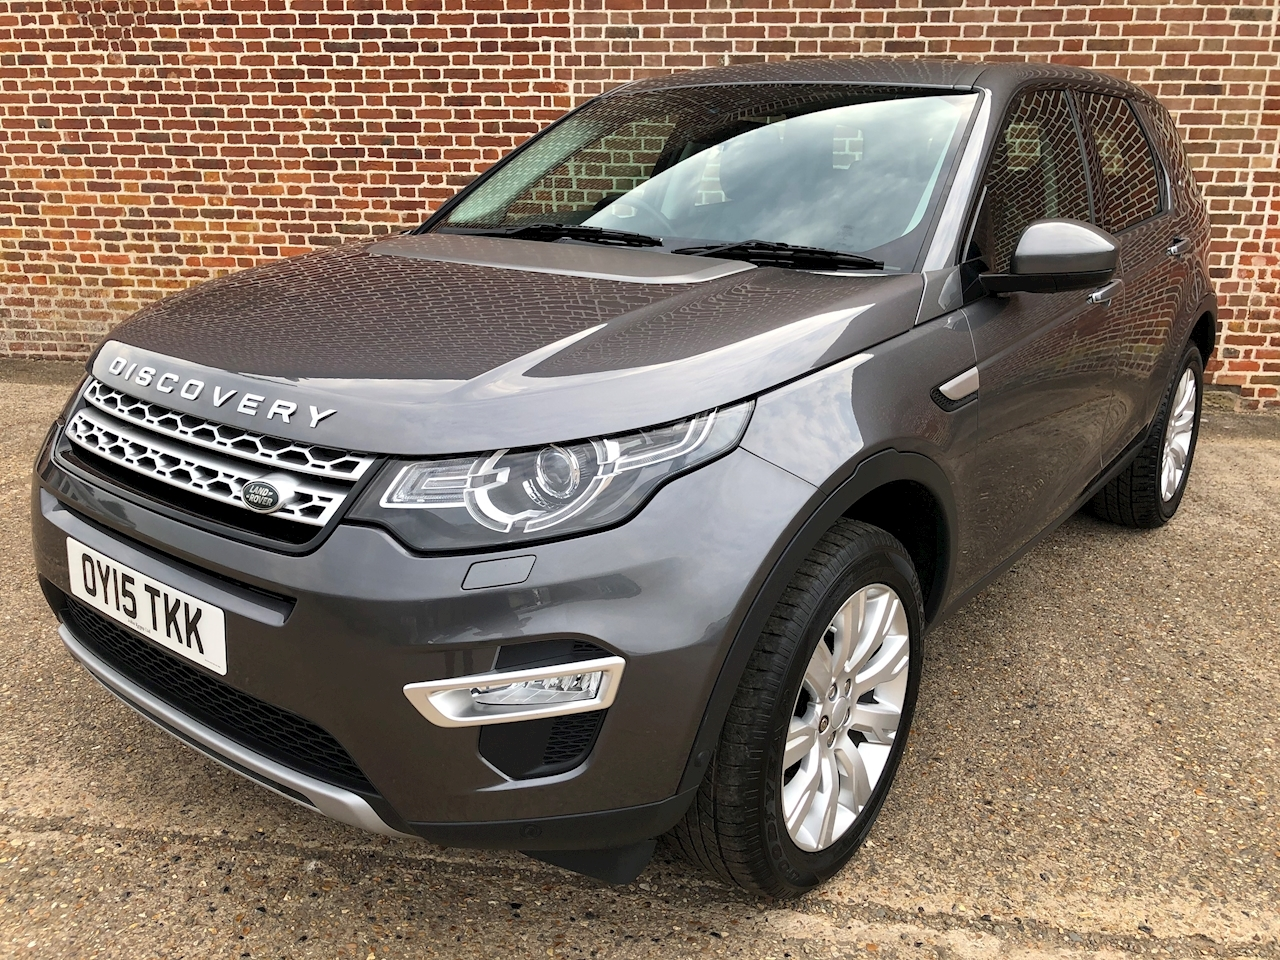 Land Rover Discovery Sport HSE Luxury SUV 2.2 Auto Diesel